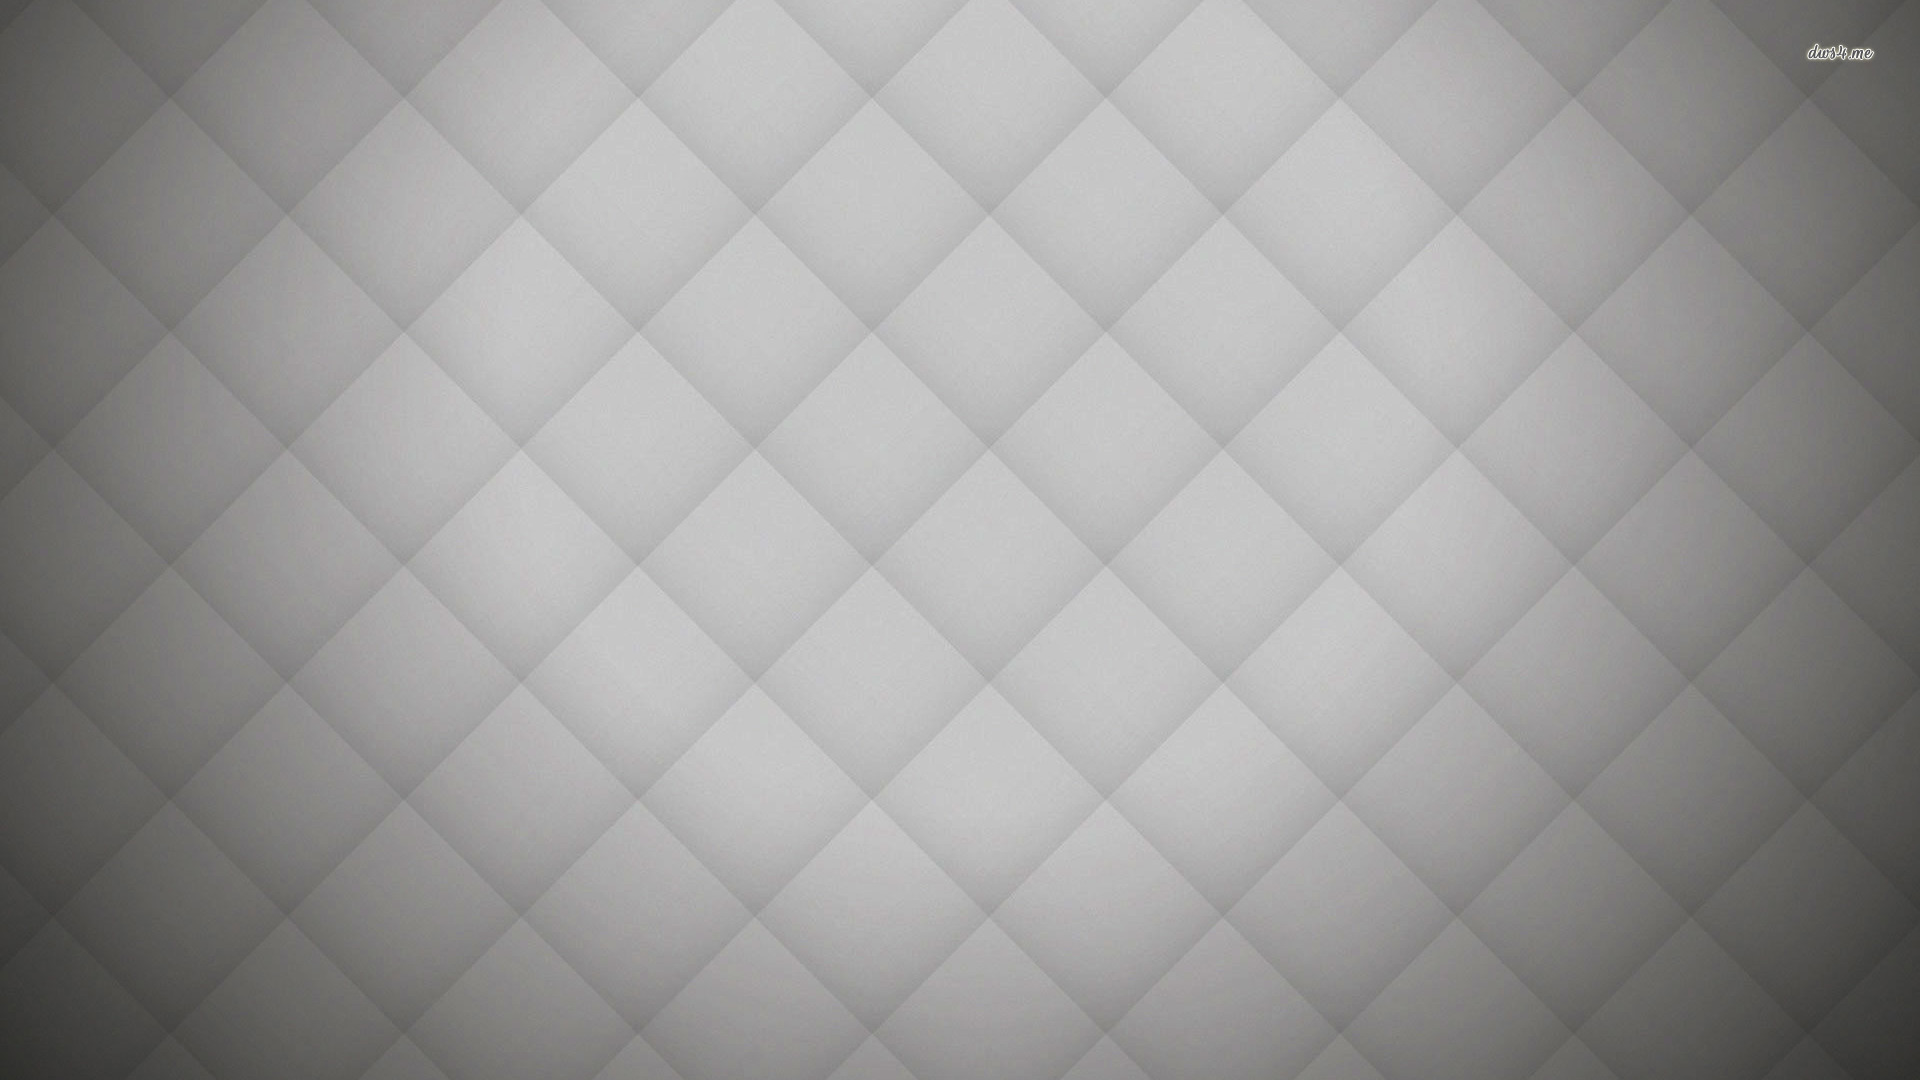 Paper Tiles Wallpaper Wallpapersafari